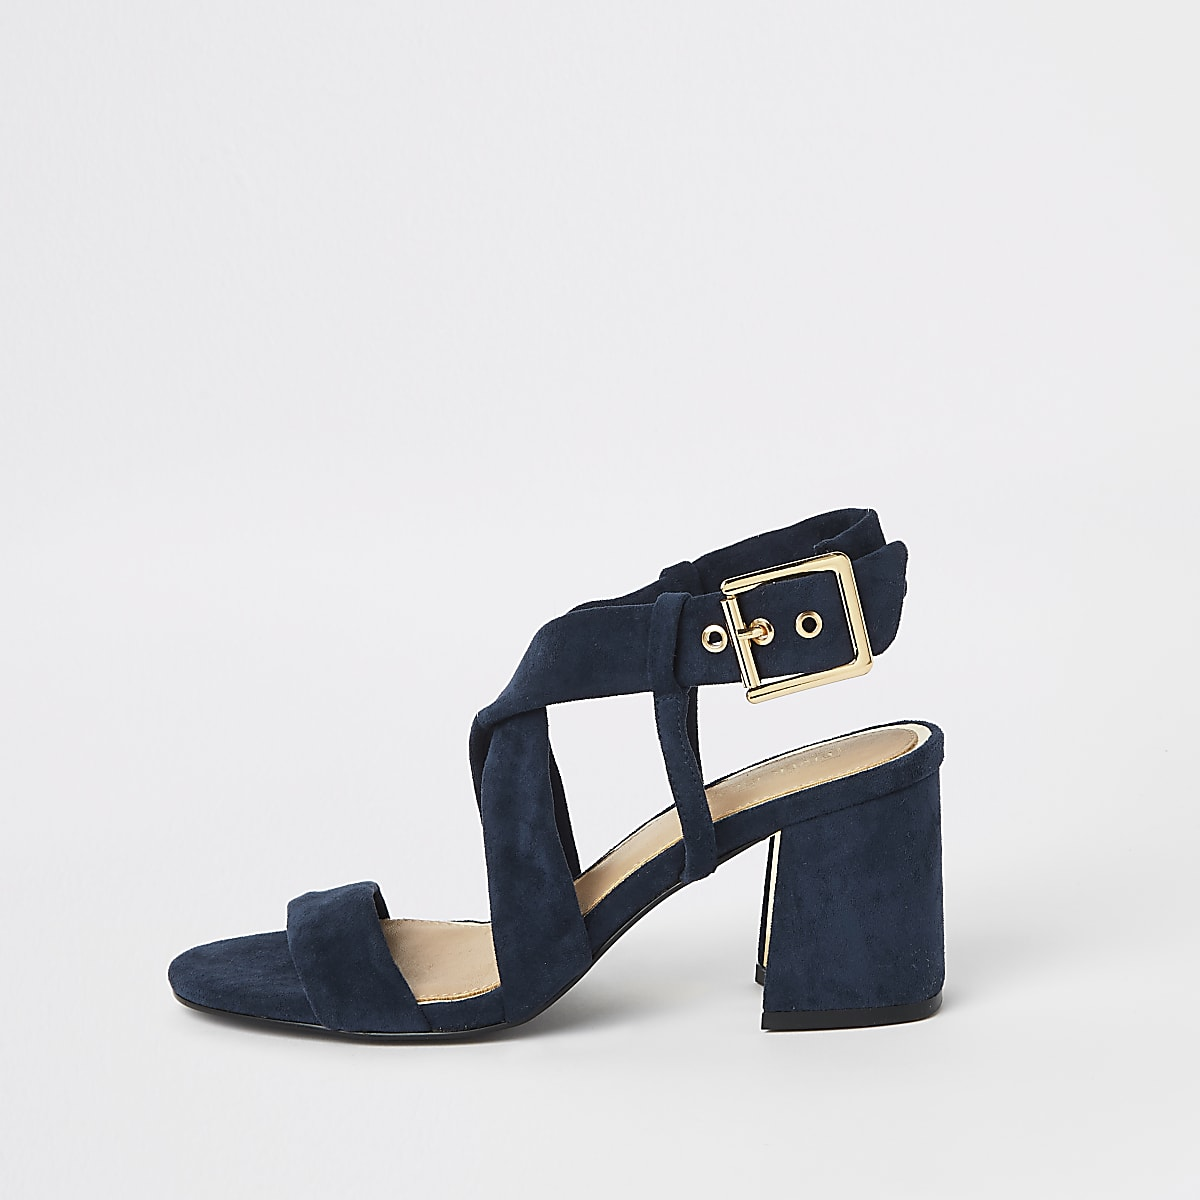 a1b7a21cf24 Navy cross strap block heel sandals - Sandals - Shoes   Boots - women